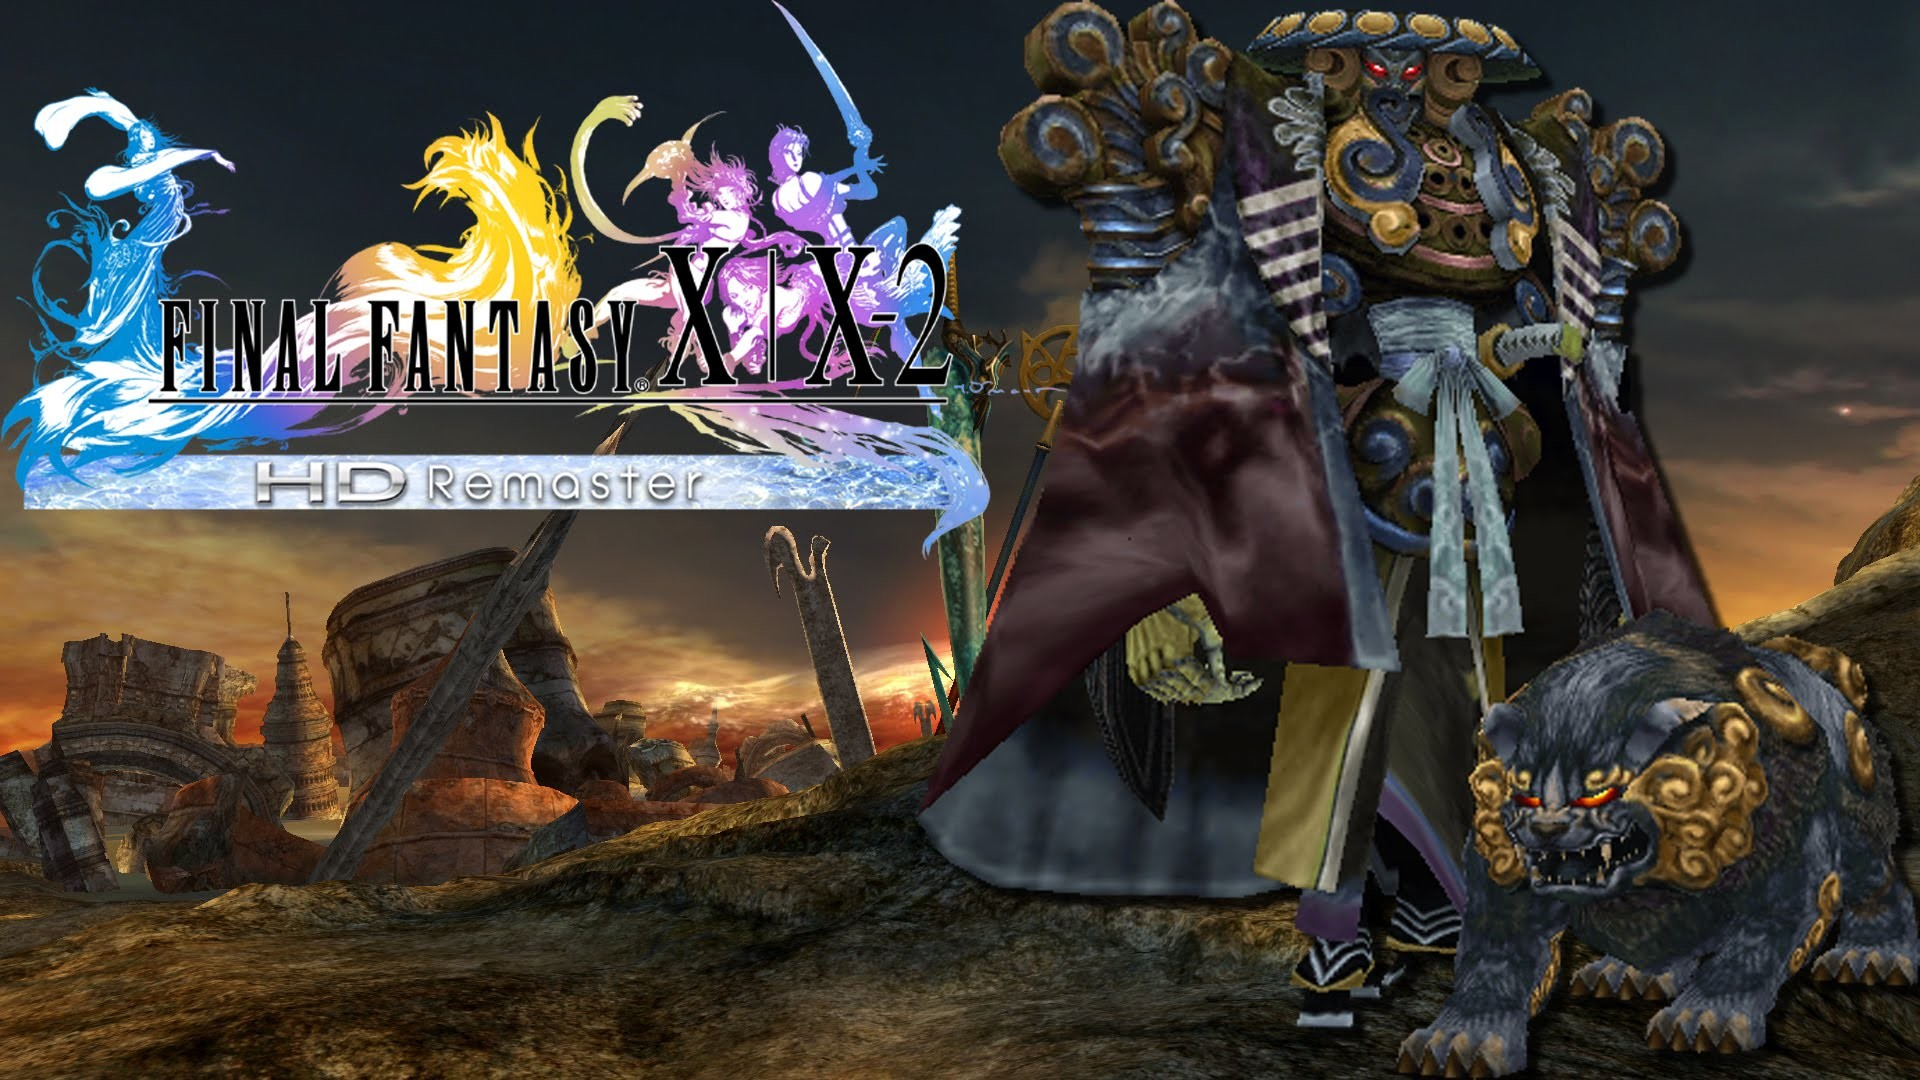 Final fantasy x hd remaster wallpaper